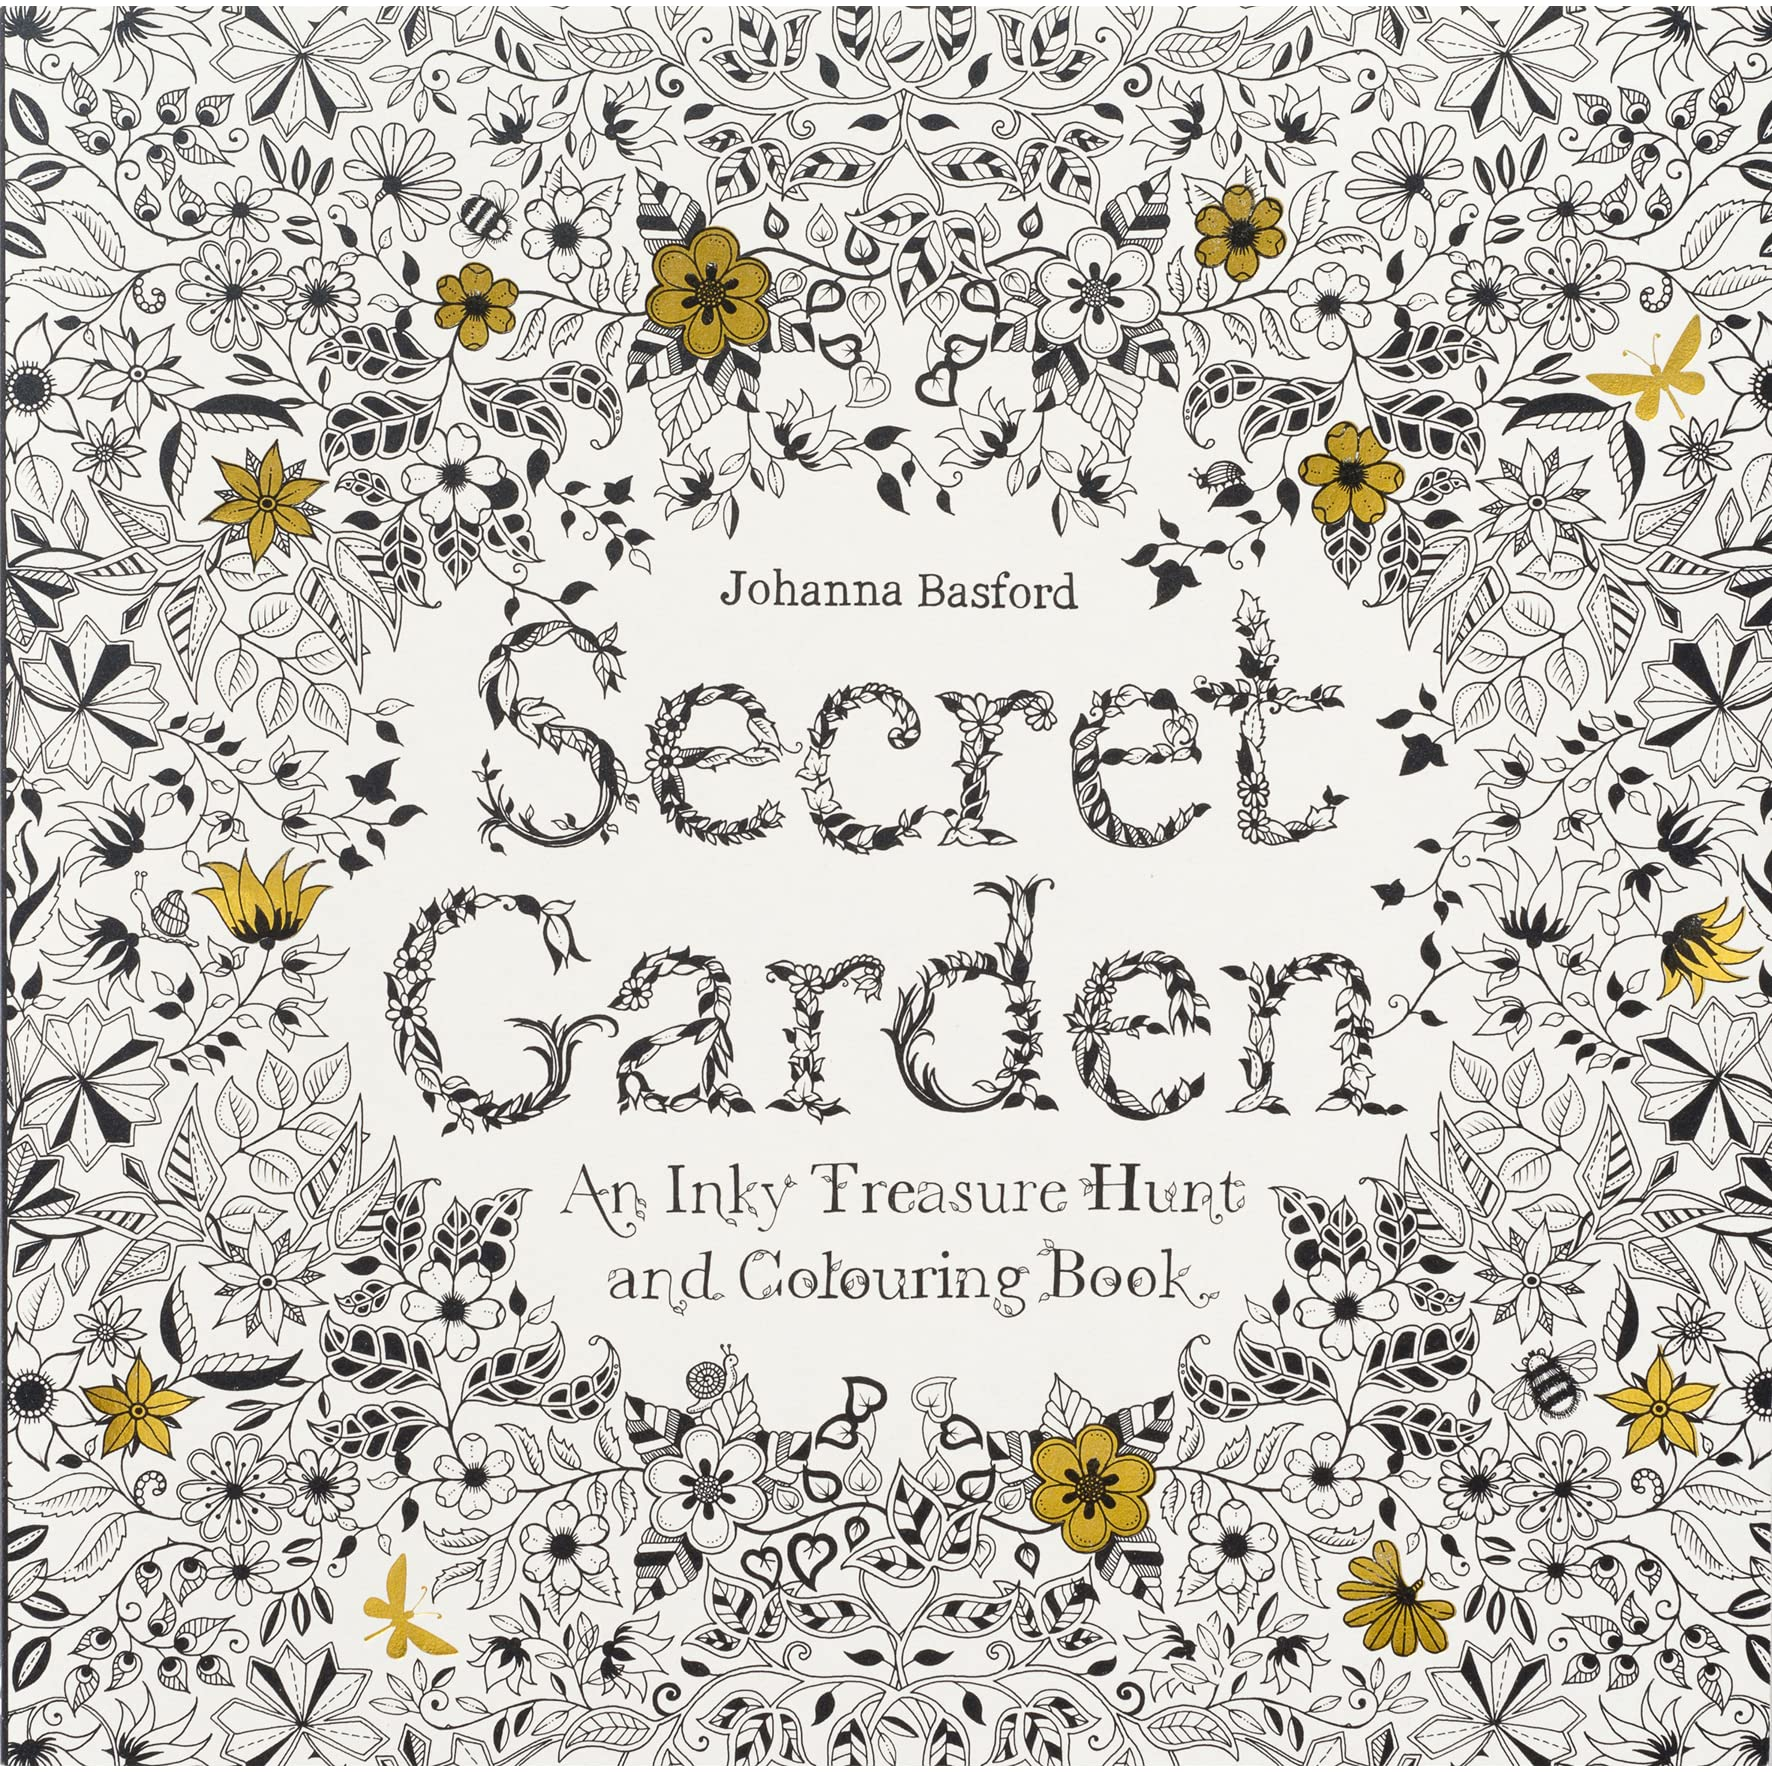 The secret garden coloring book review - Secret Garden An Inky Treasure Hunt And Colouring Book By Johanna Basford Reviews Discussion Bookclubs Lists